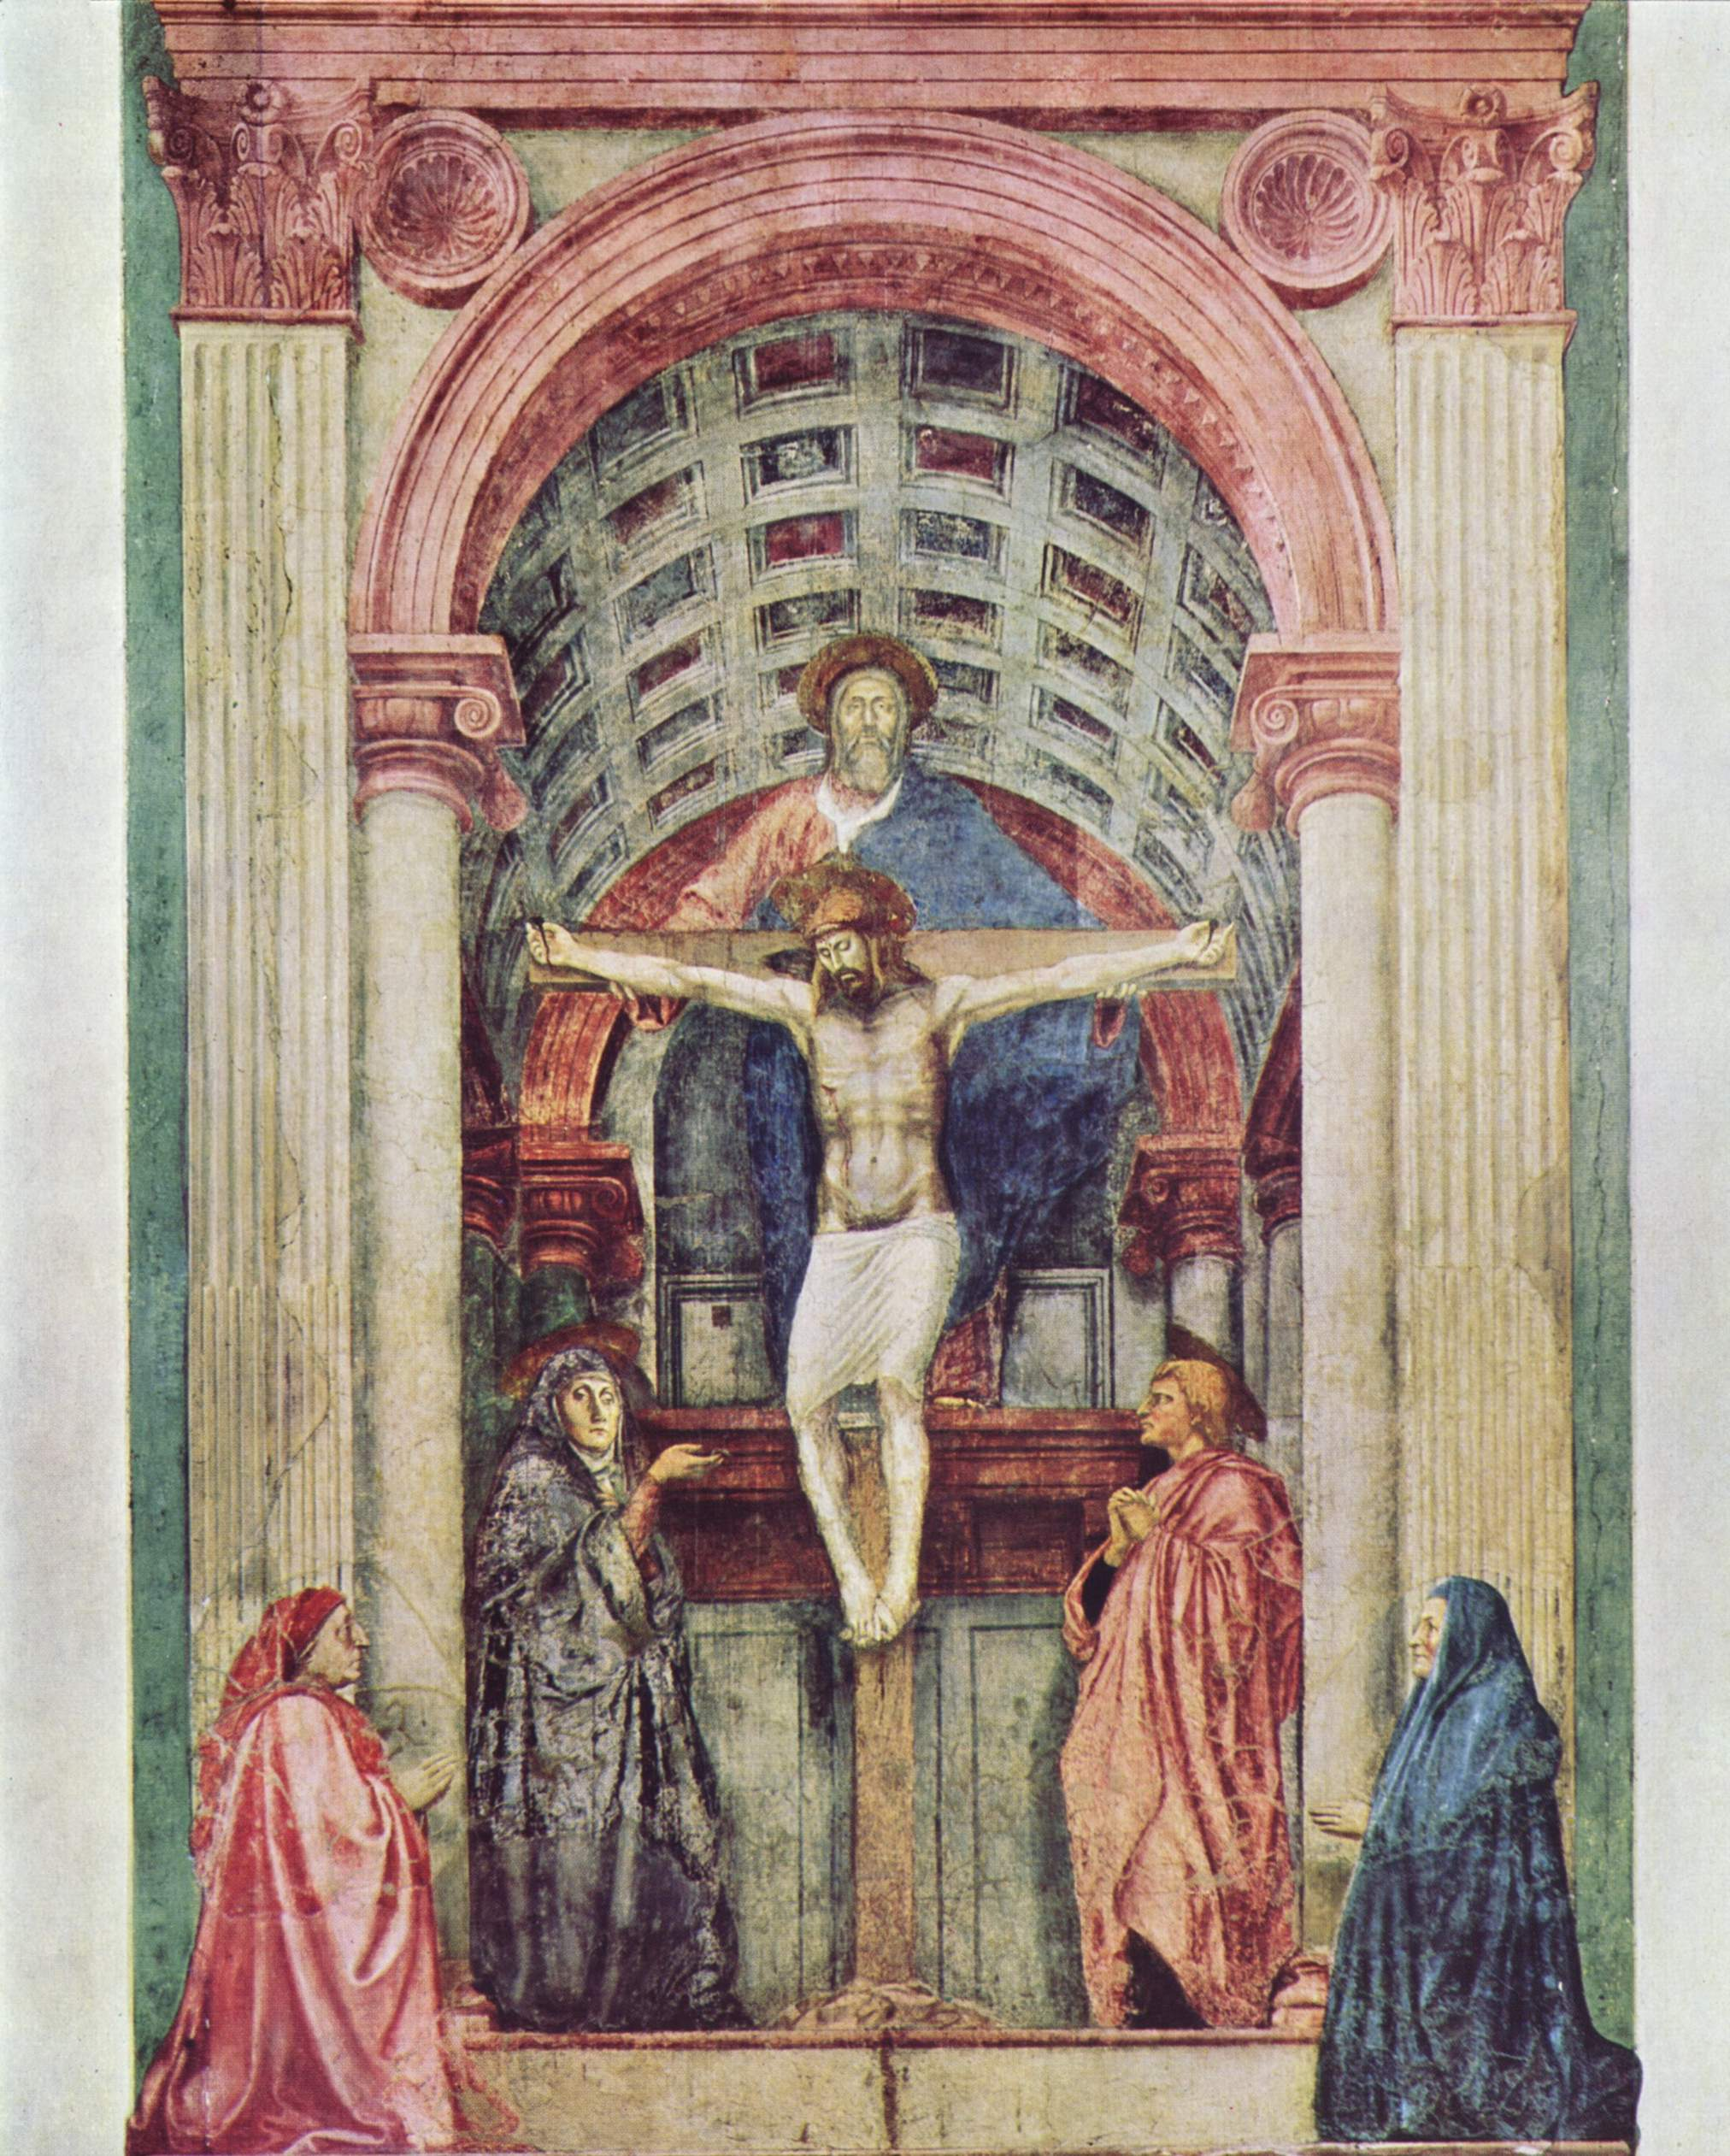 masaccio essay The life of masaccio (art history) essays 'it was masaccio, the youngest of all painters who were young before during and after him who, in his few youthful years.